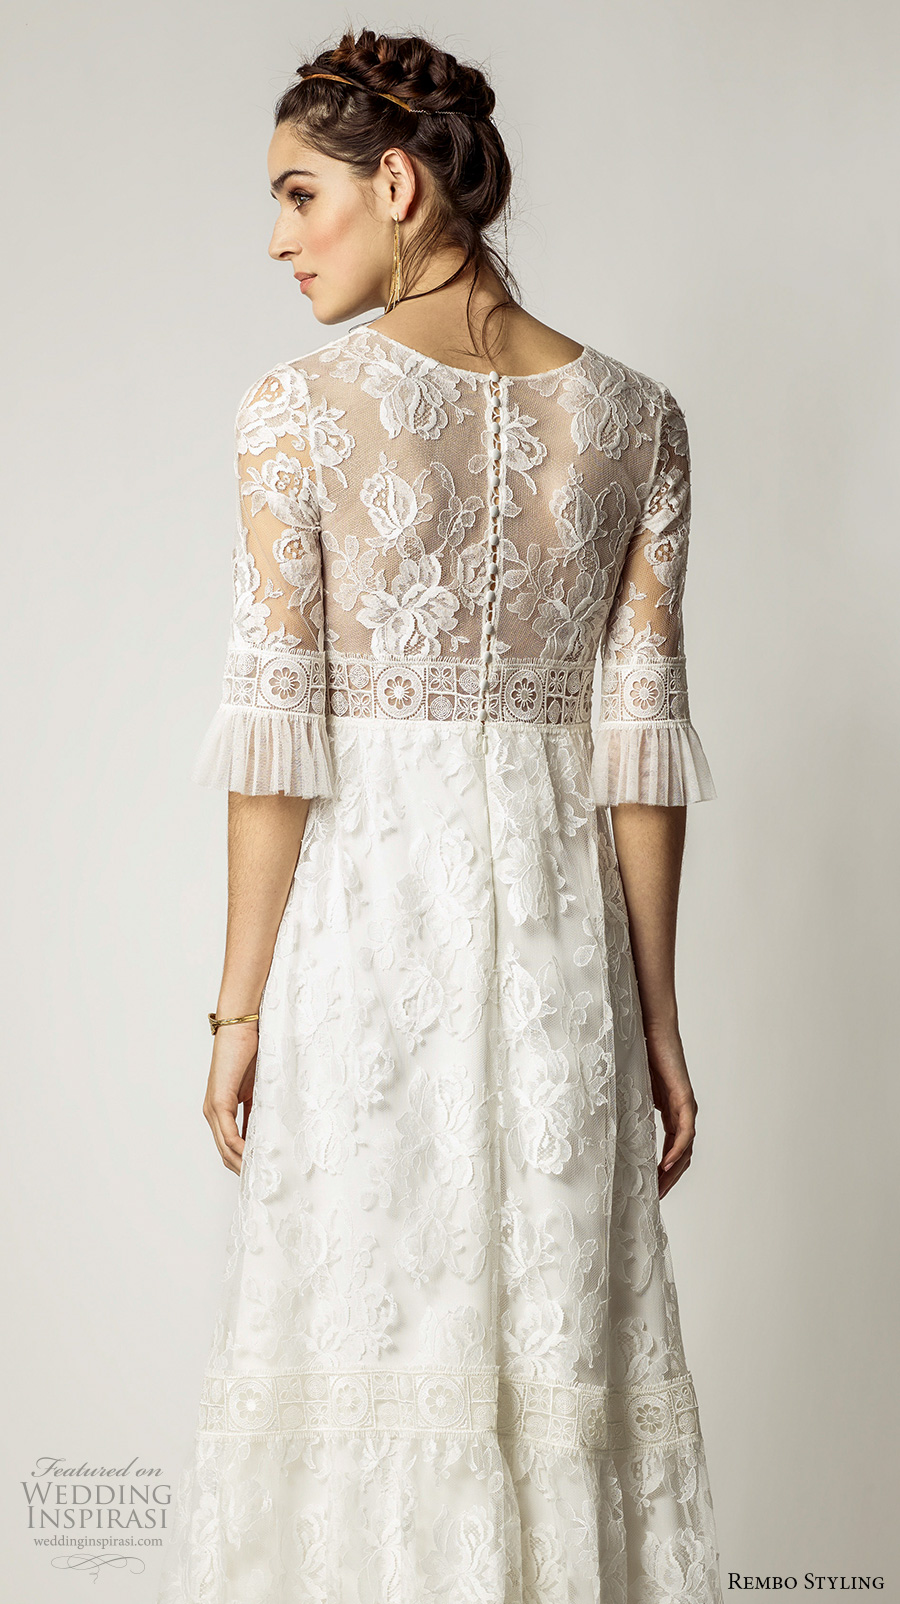 Vintage Clothing Wedding Dresses 94 Cute rembo styling bridal lace